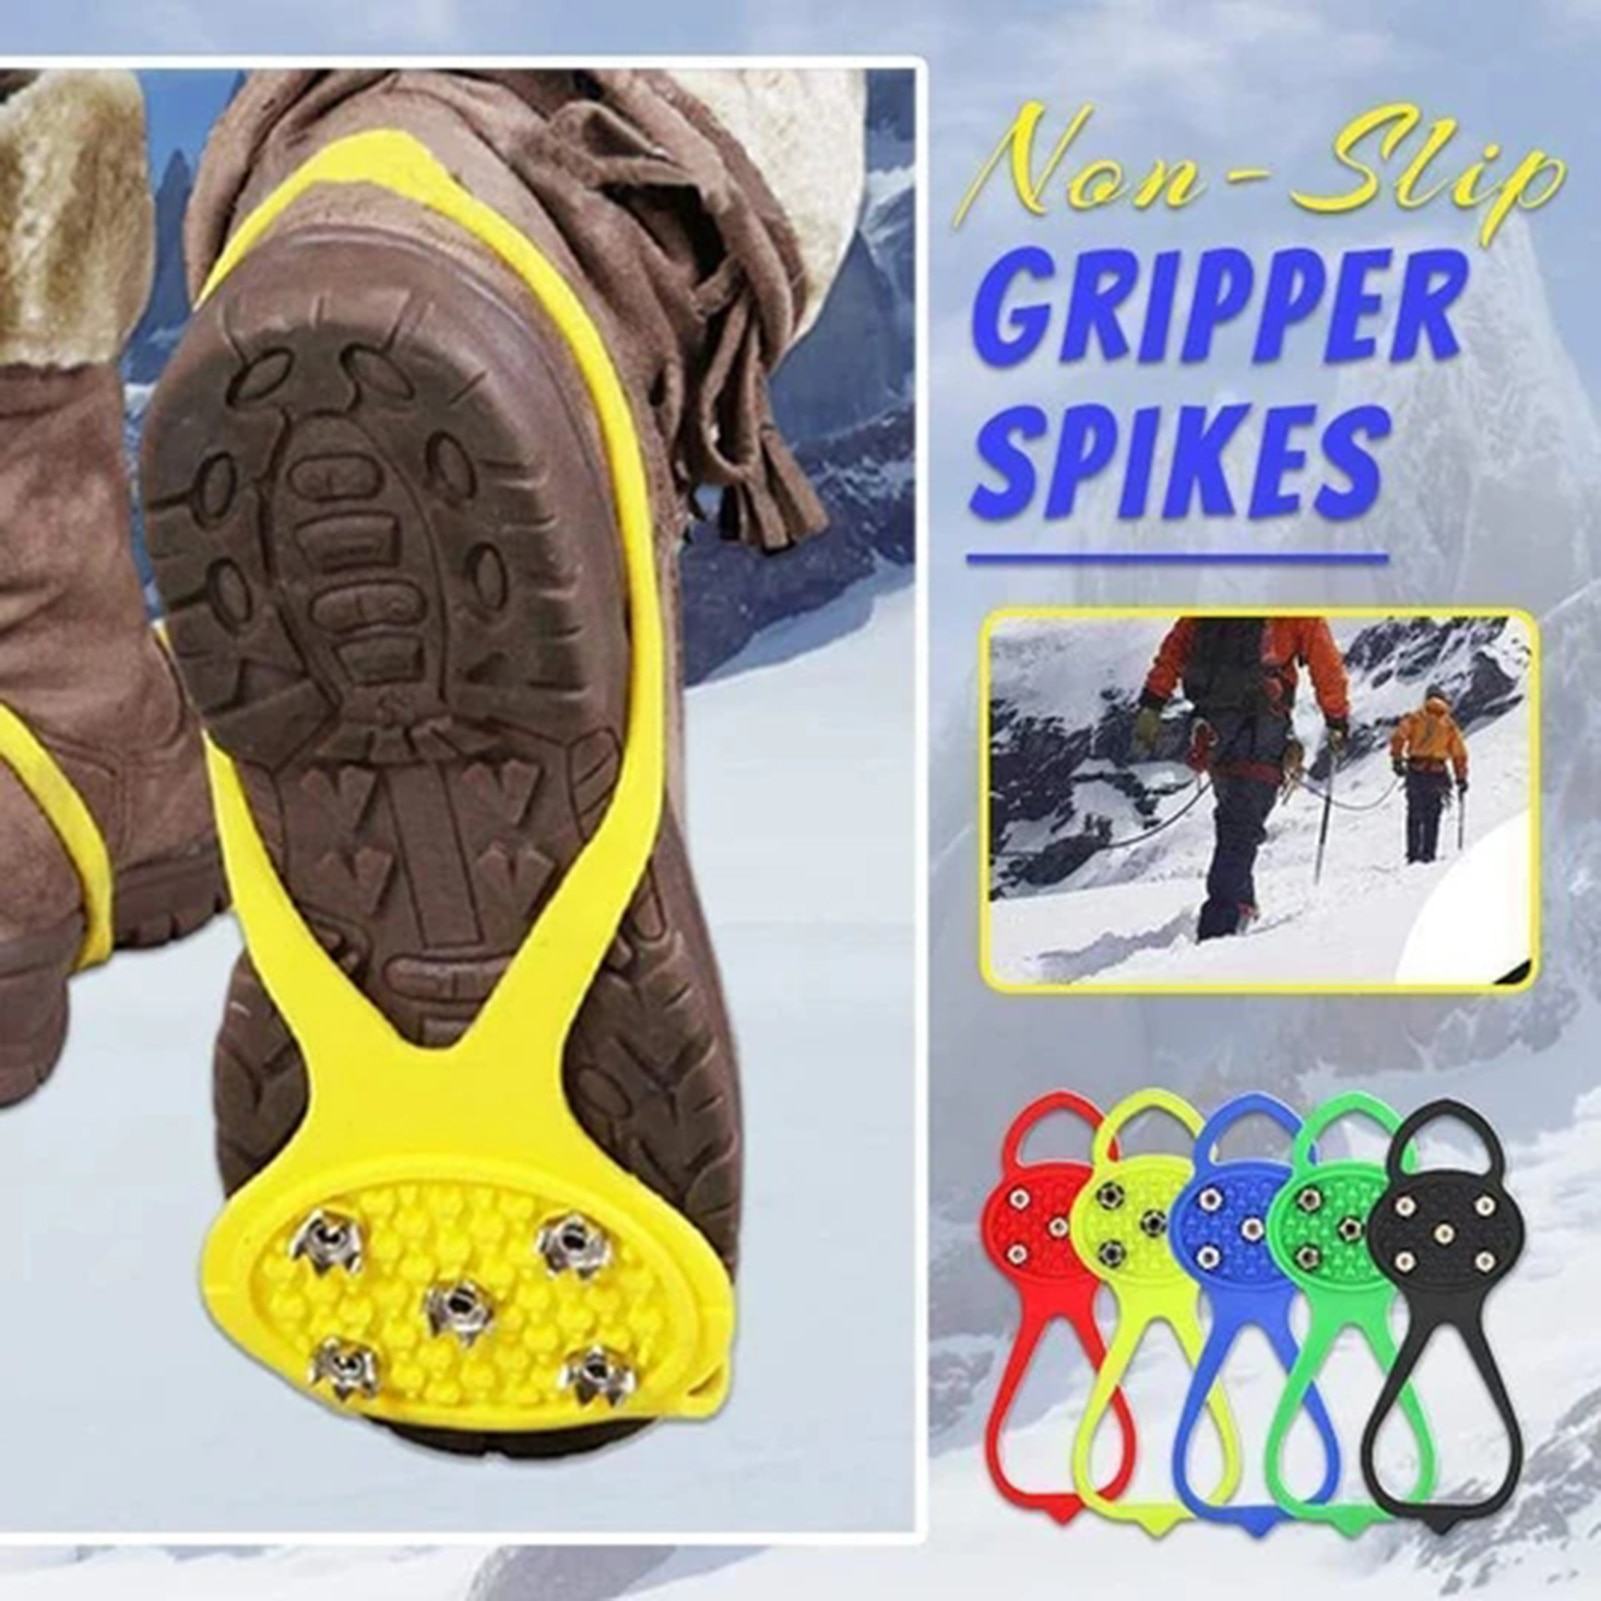 Universal Anti-Slip Gripper Spikes Crampons Grippers Over Shoe Durable Cleats Elasticity Perfect for